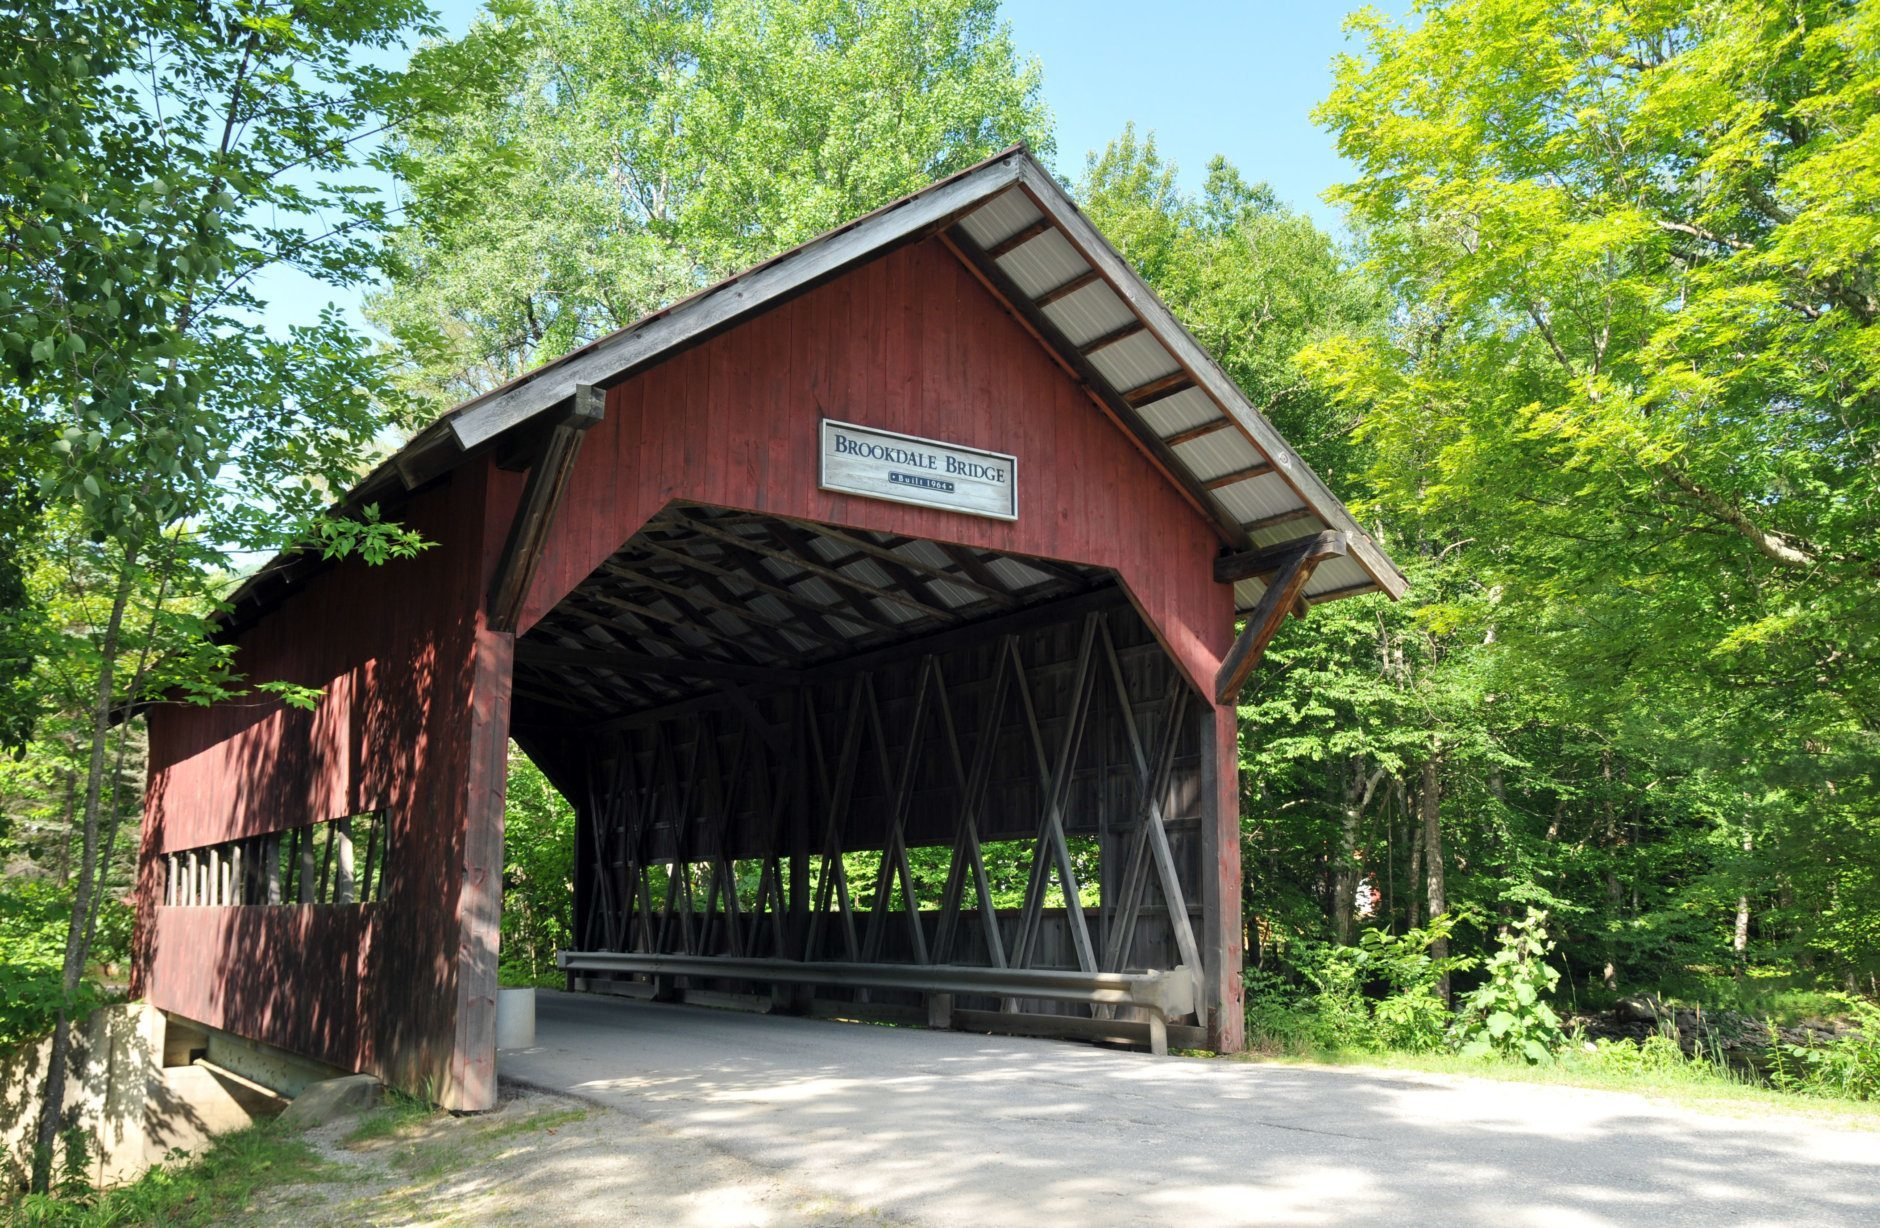 Brookdale covered bridge on Brook Road in Stowe, Vermont; also known as Brook Road or White Caps Bridge